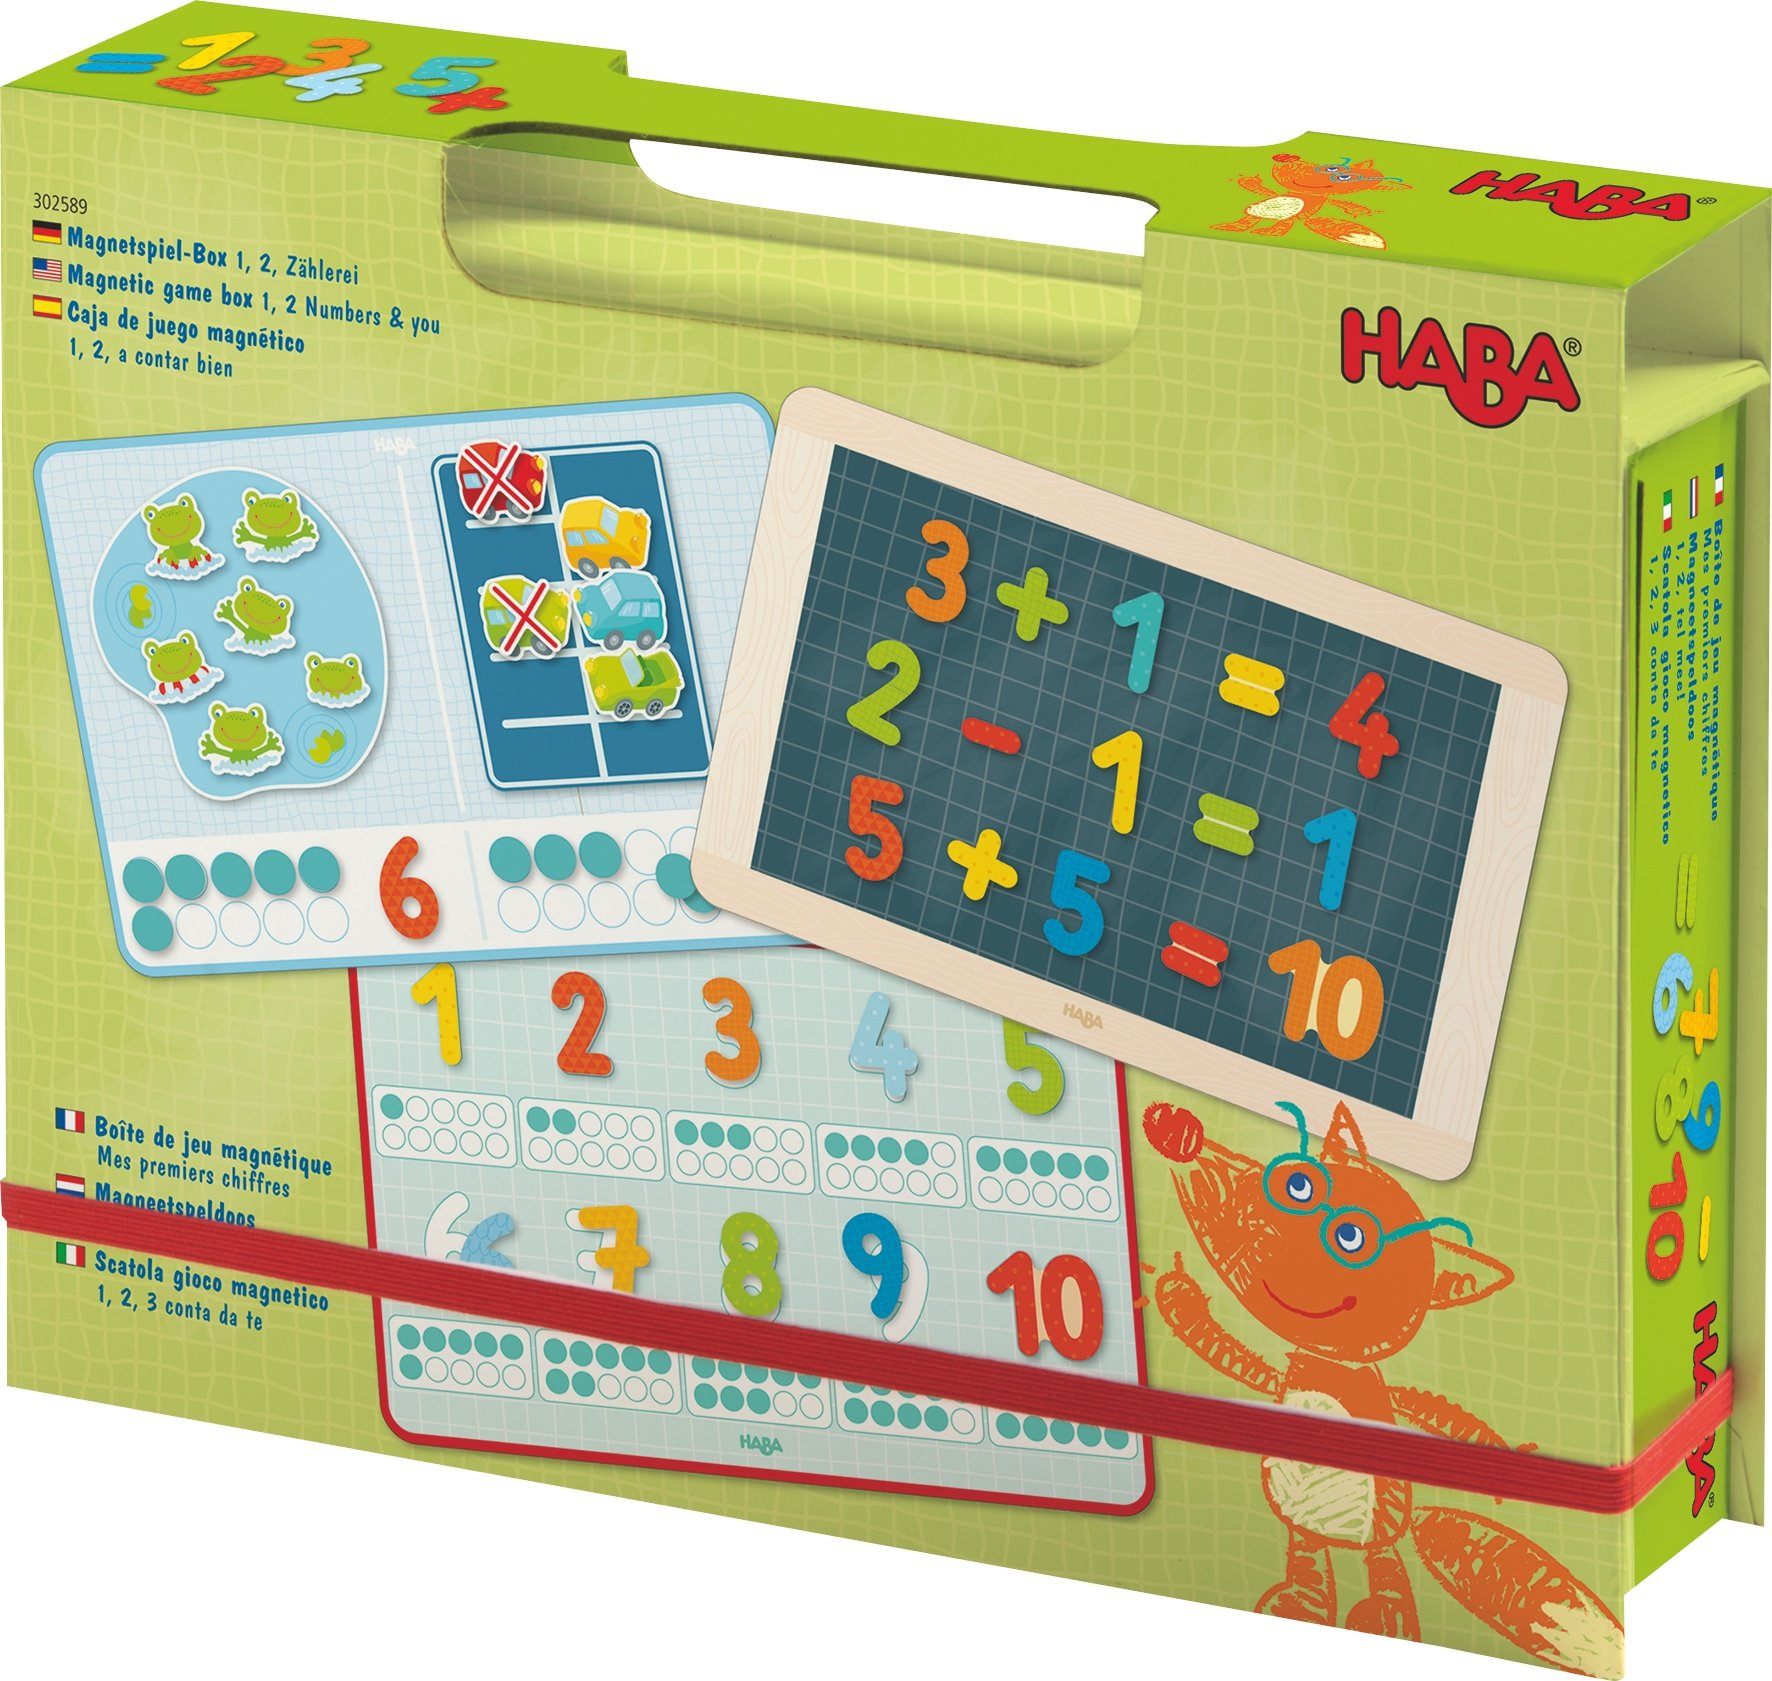 HABA Magnetic Game Box Numbers - 1 2 3 Numbers & You - 158 Magnetic Pieces in Travel Cardboard Carrying Case